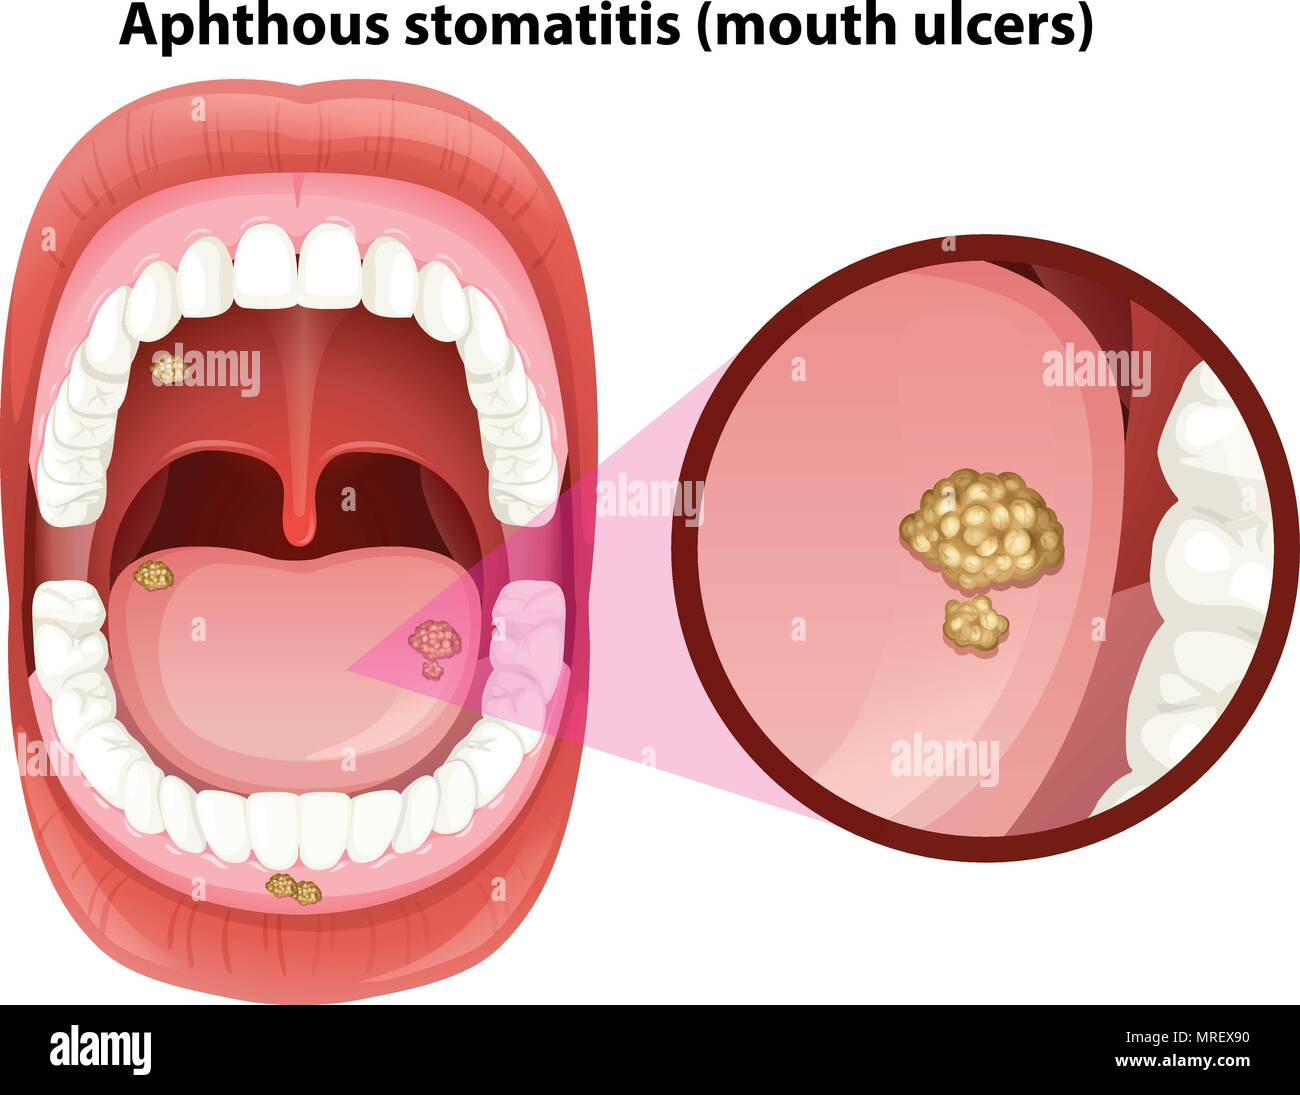 Human Mouth Anatomy Of Ulcers Illustration Stock Vector Art